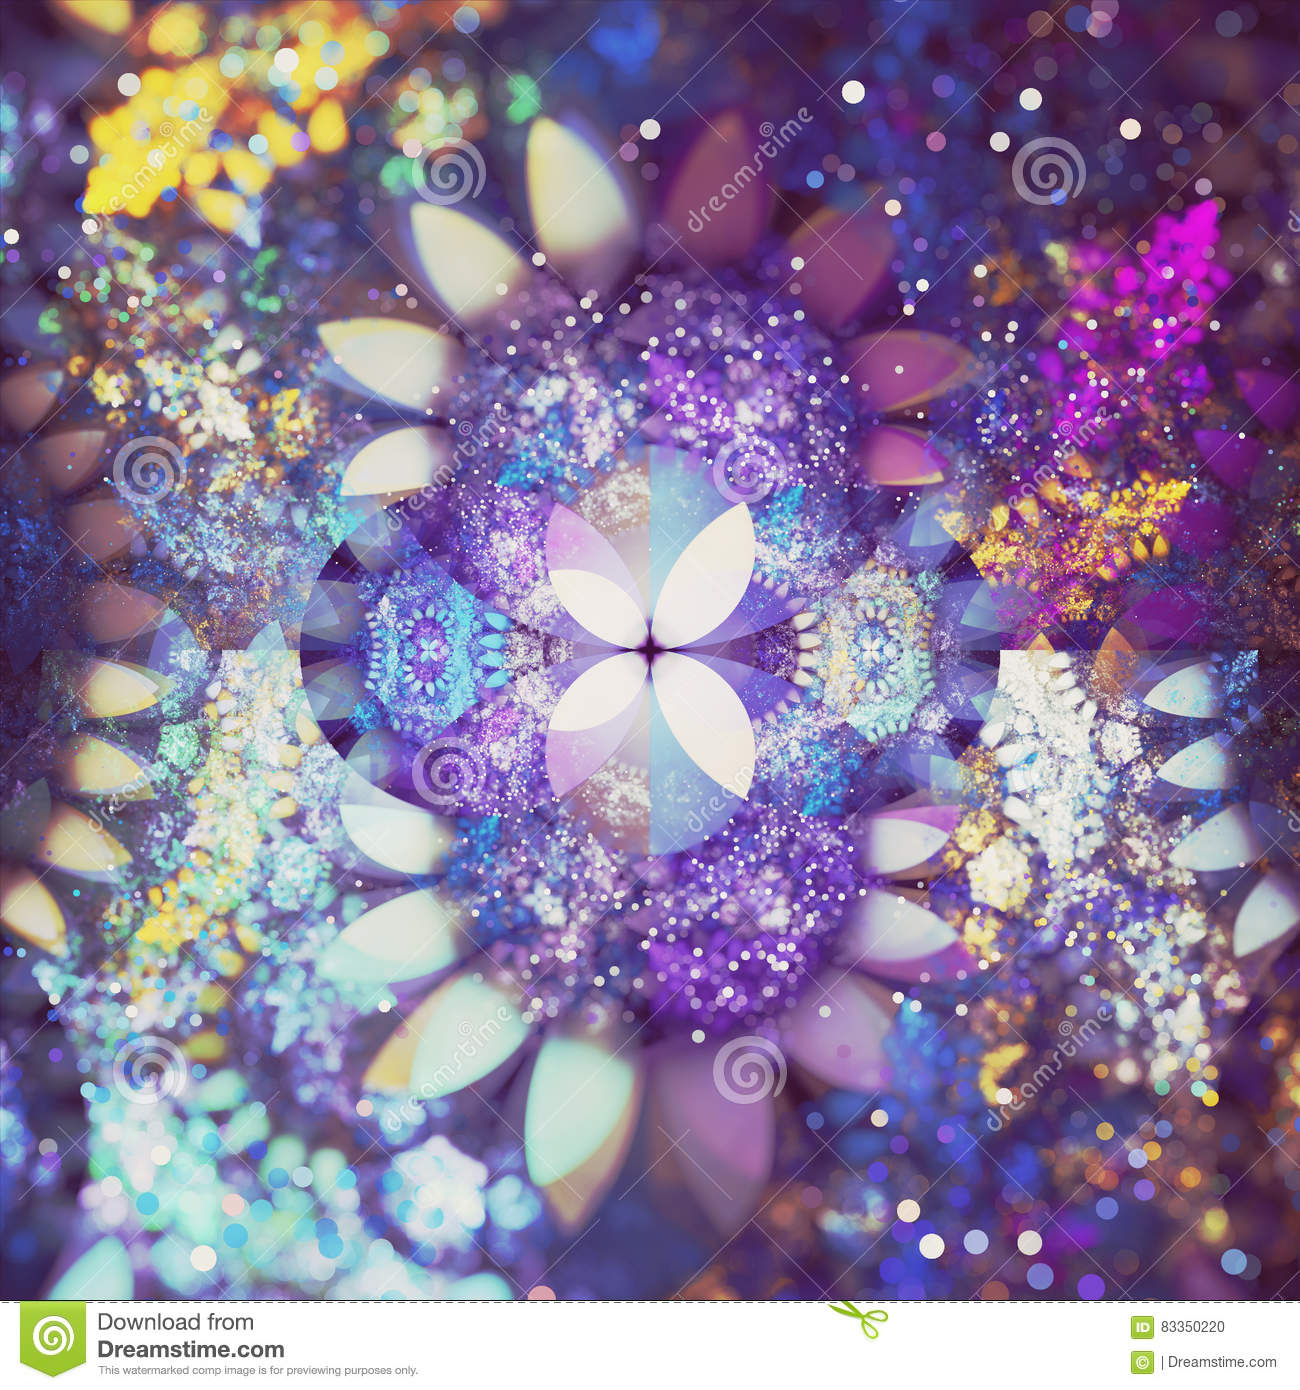 Fractal abstracto